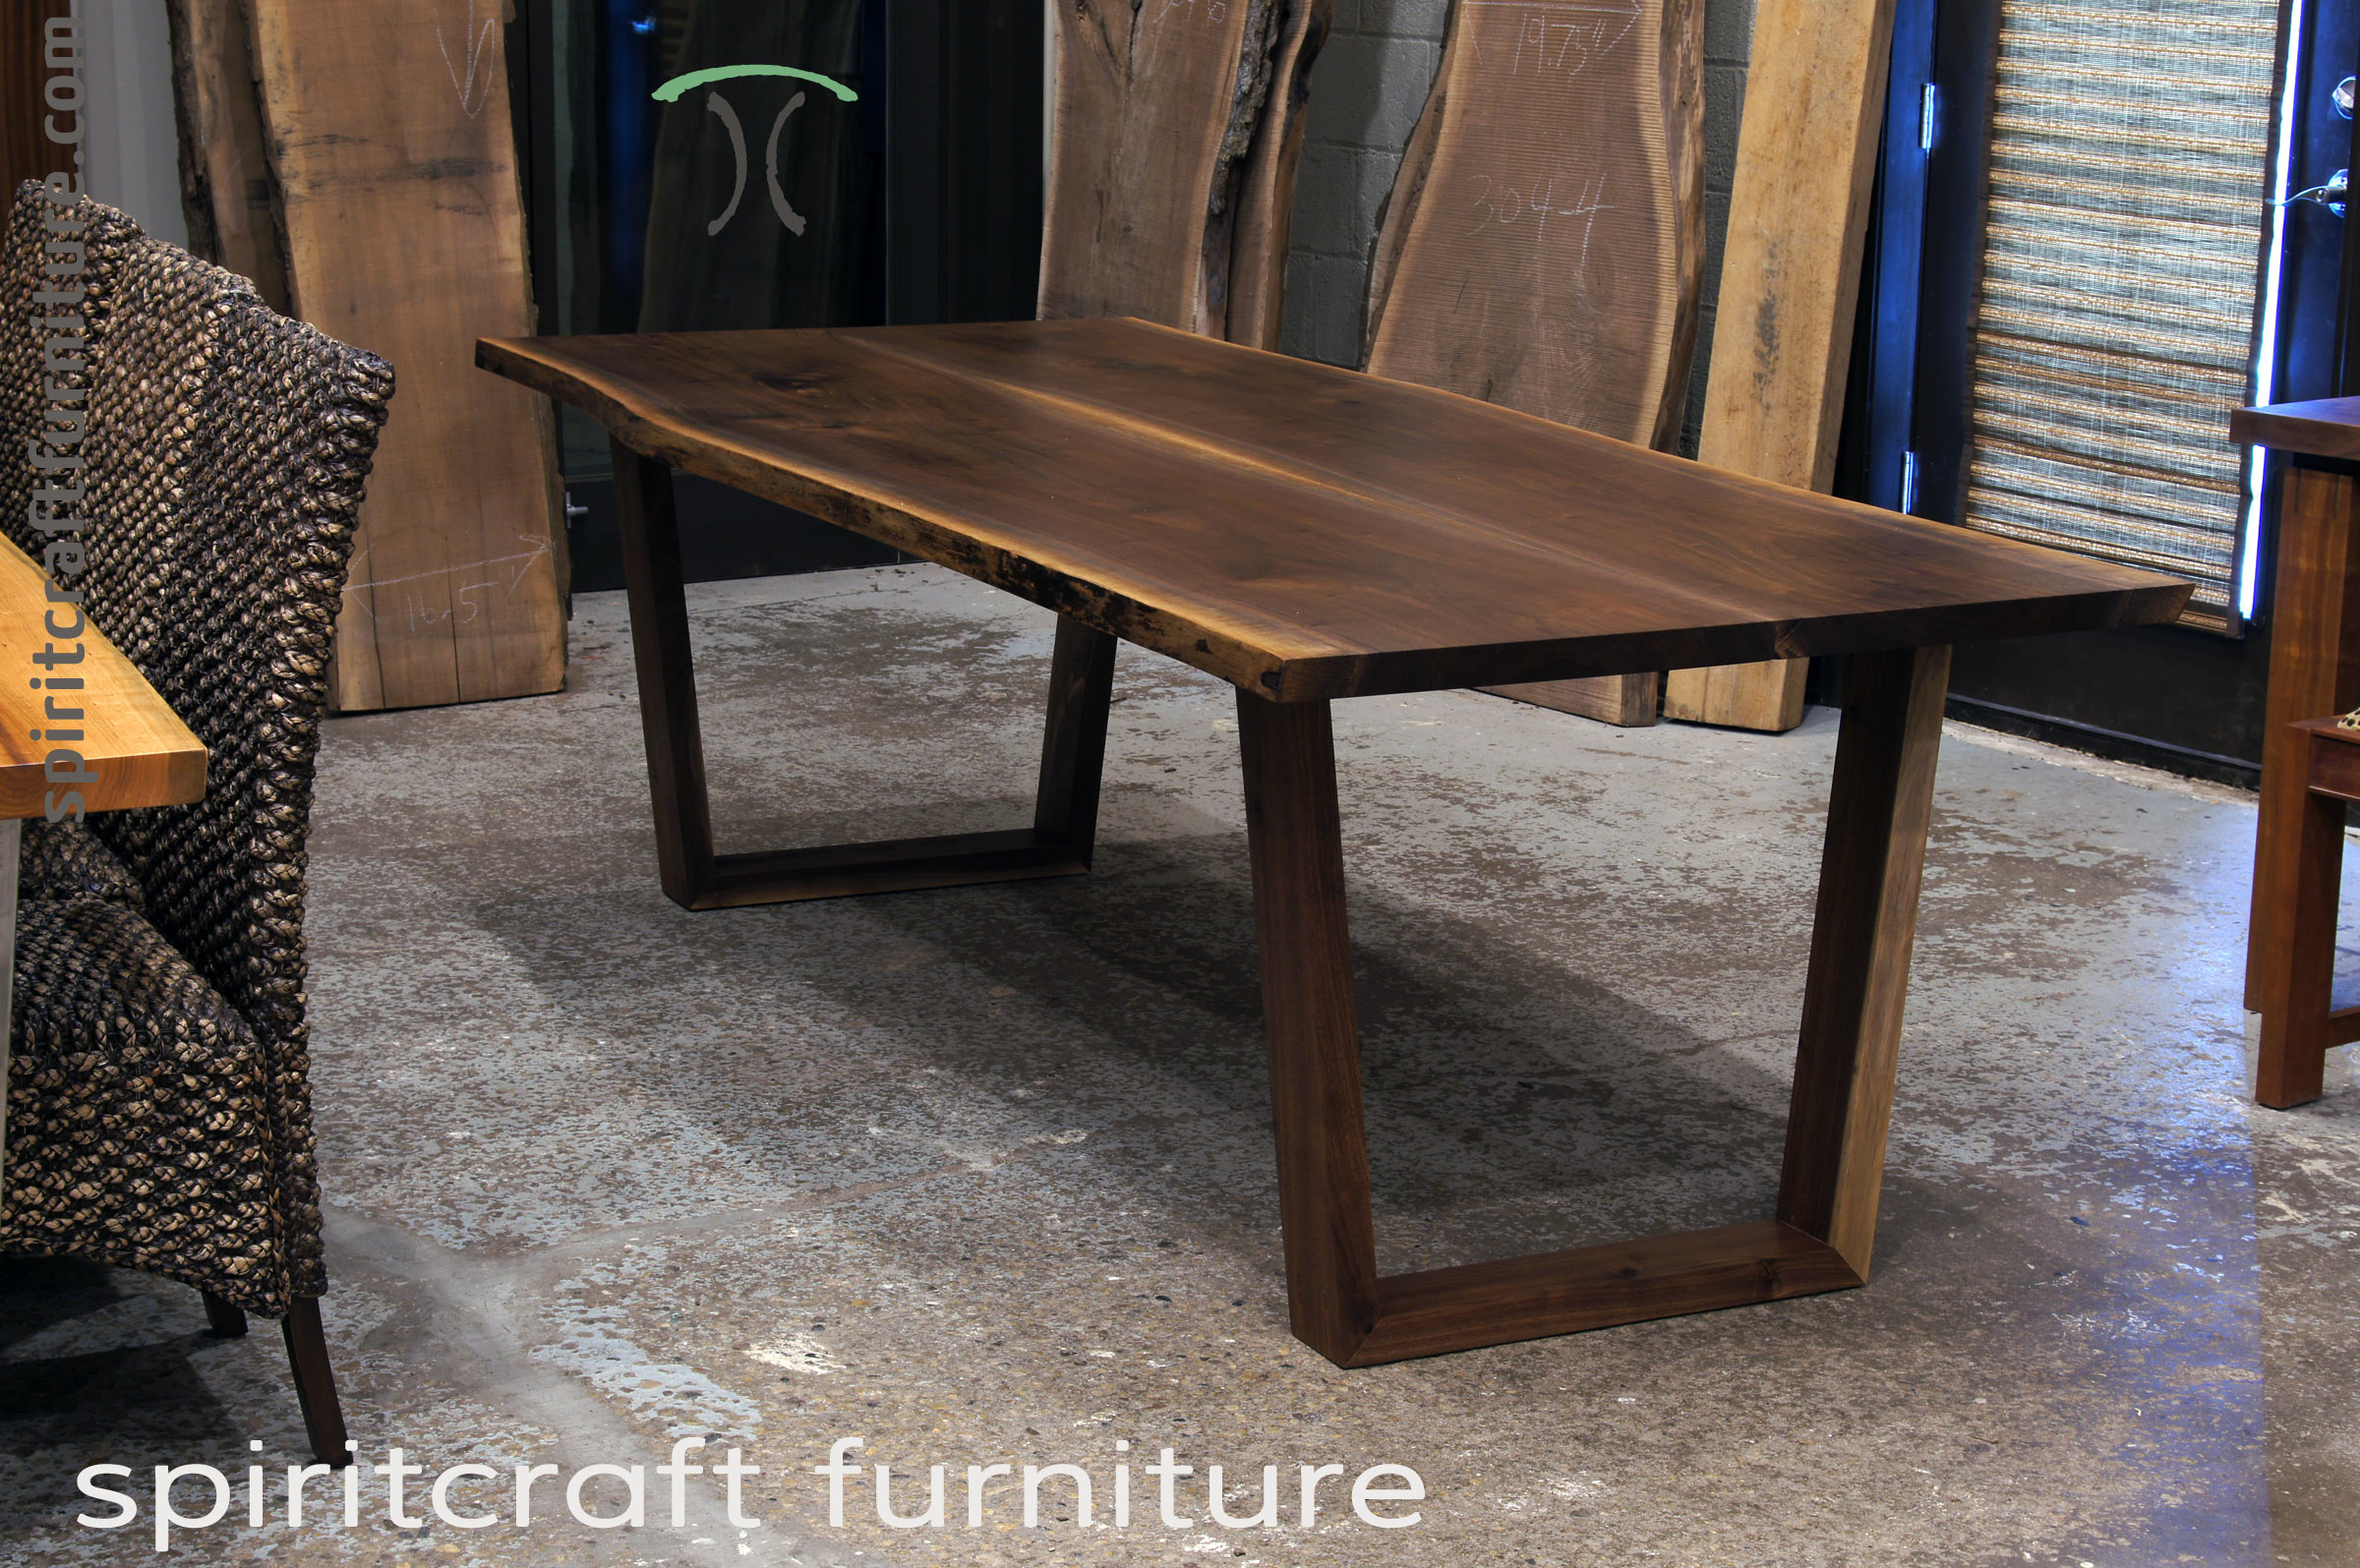 Black Walnut live edge slab dining table for Chicago area Living Edge Furniture Company, East Dundee, IL.